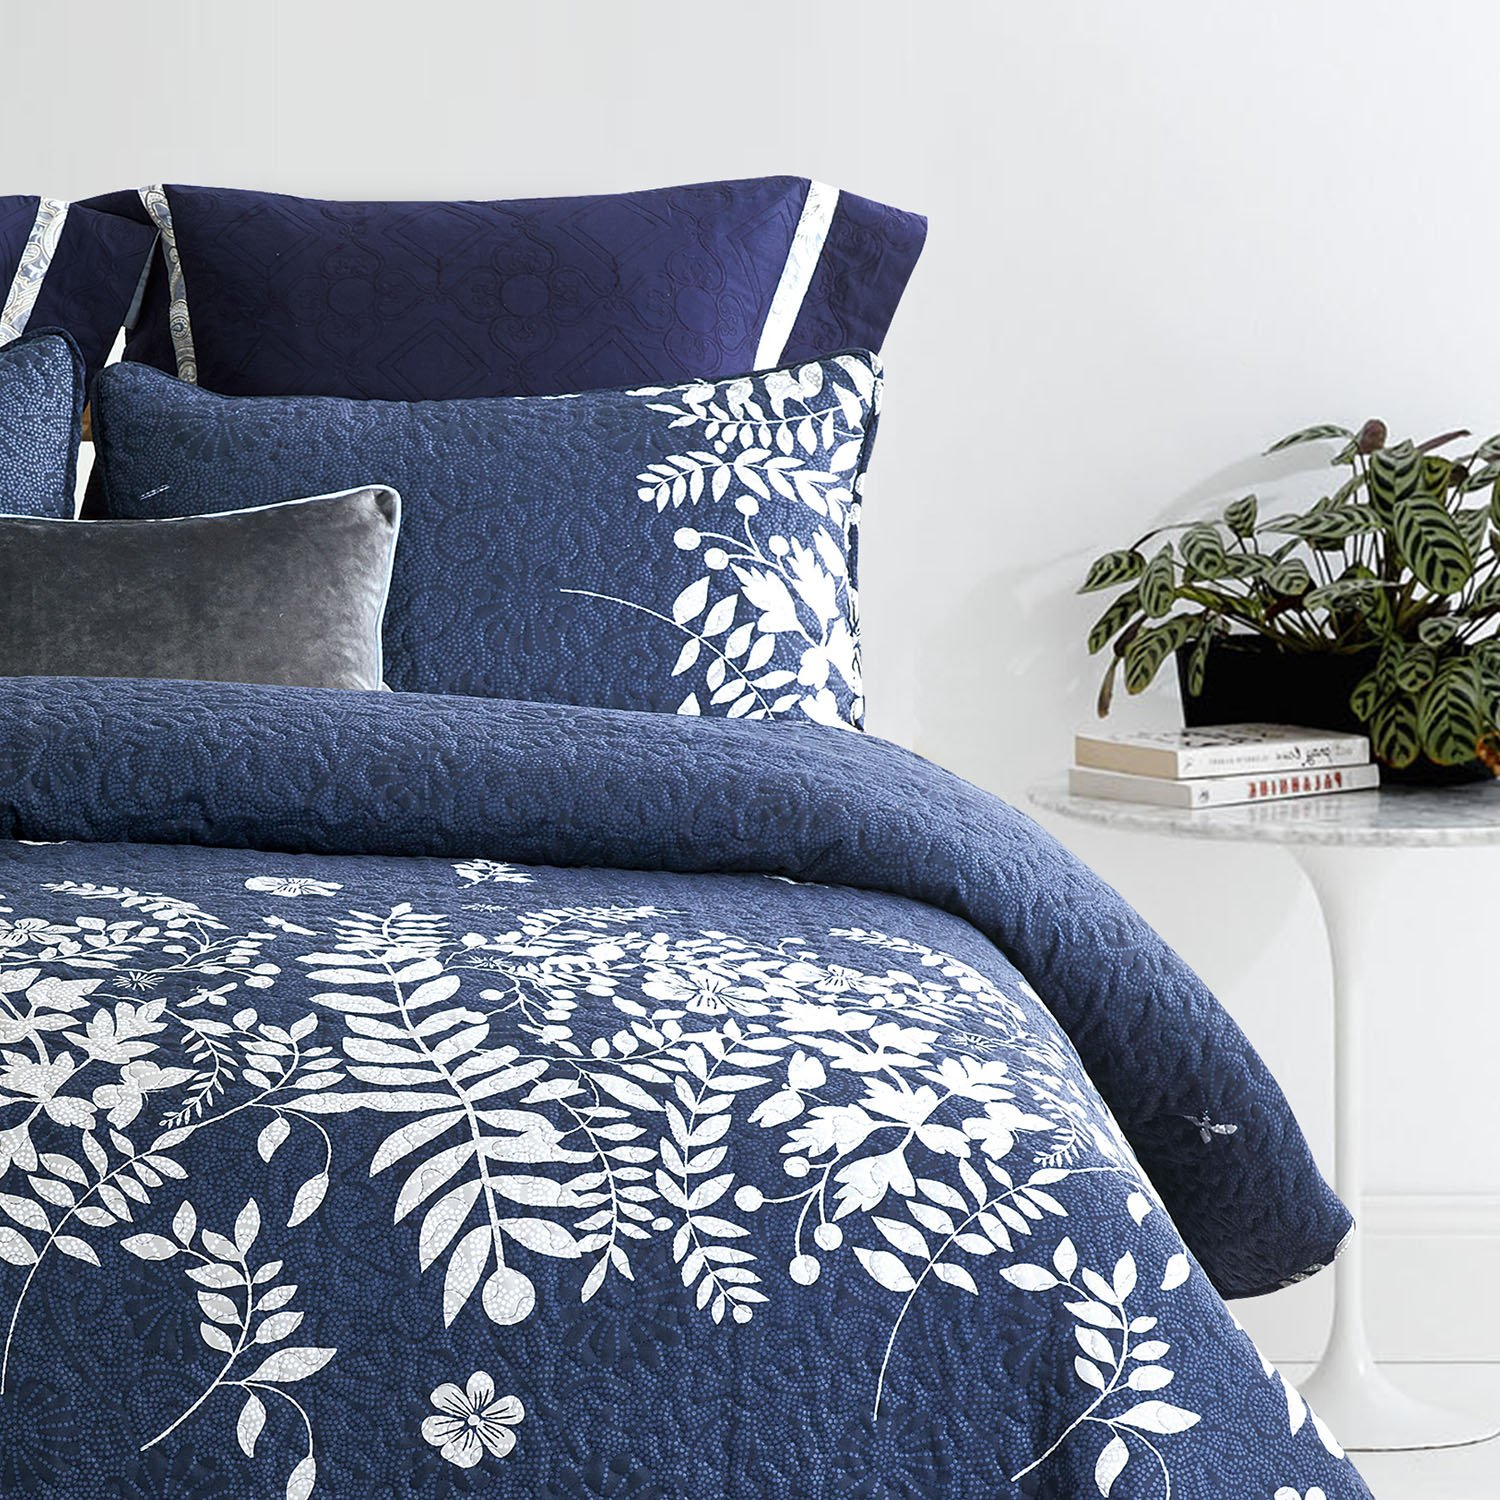 Wake In Cloud - Navy Blue Quilt Set, Gray Grey Floral Flowers Tree Leaves Modern Pattern Printed, Soft Microfiber Bedspread Coverlet Bedding (3pcs, King Size) by Wake In Cloud (Image #4)